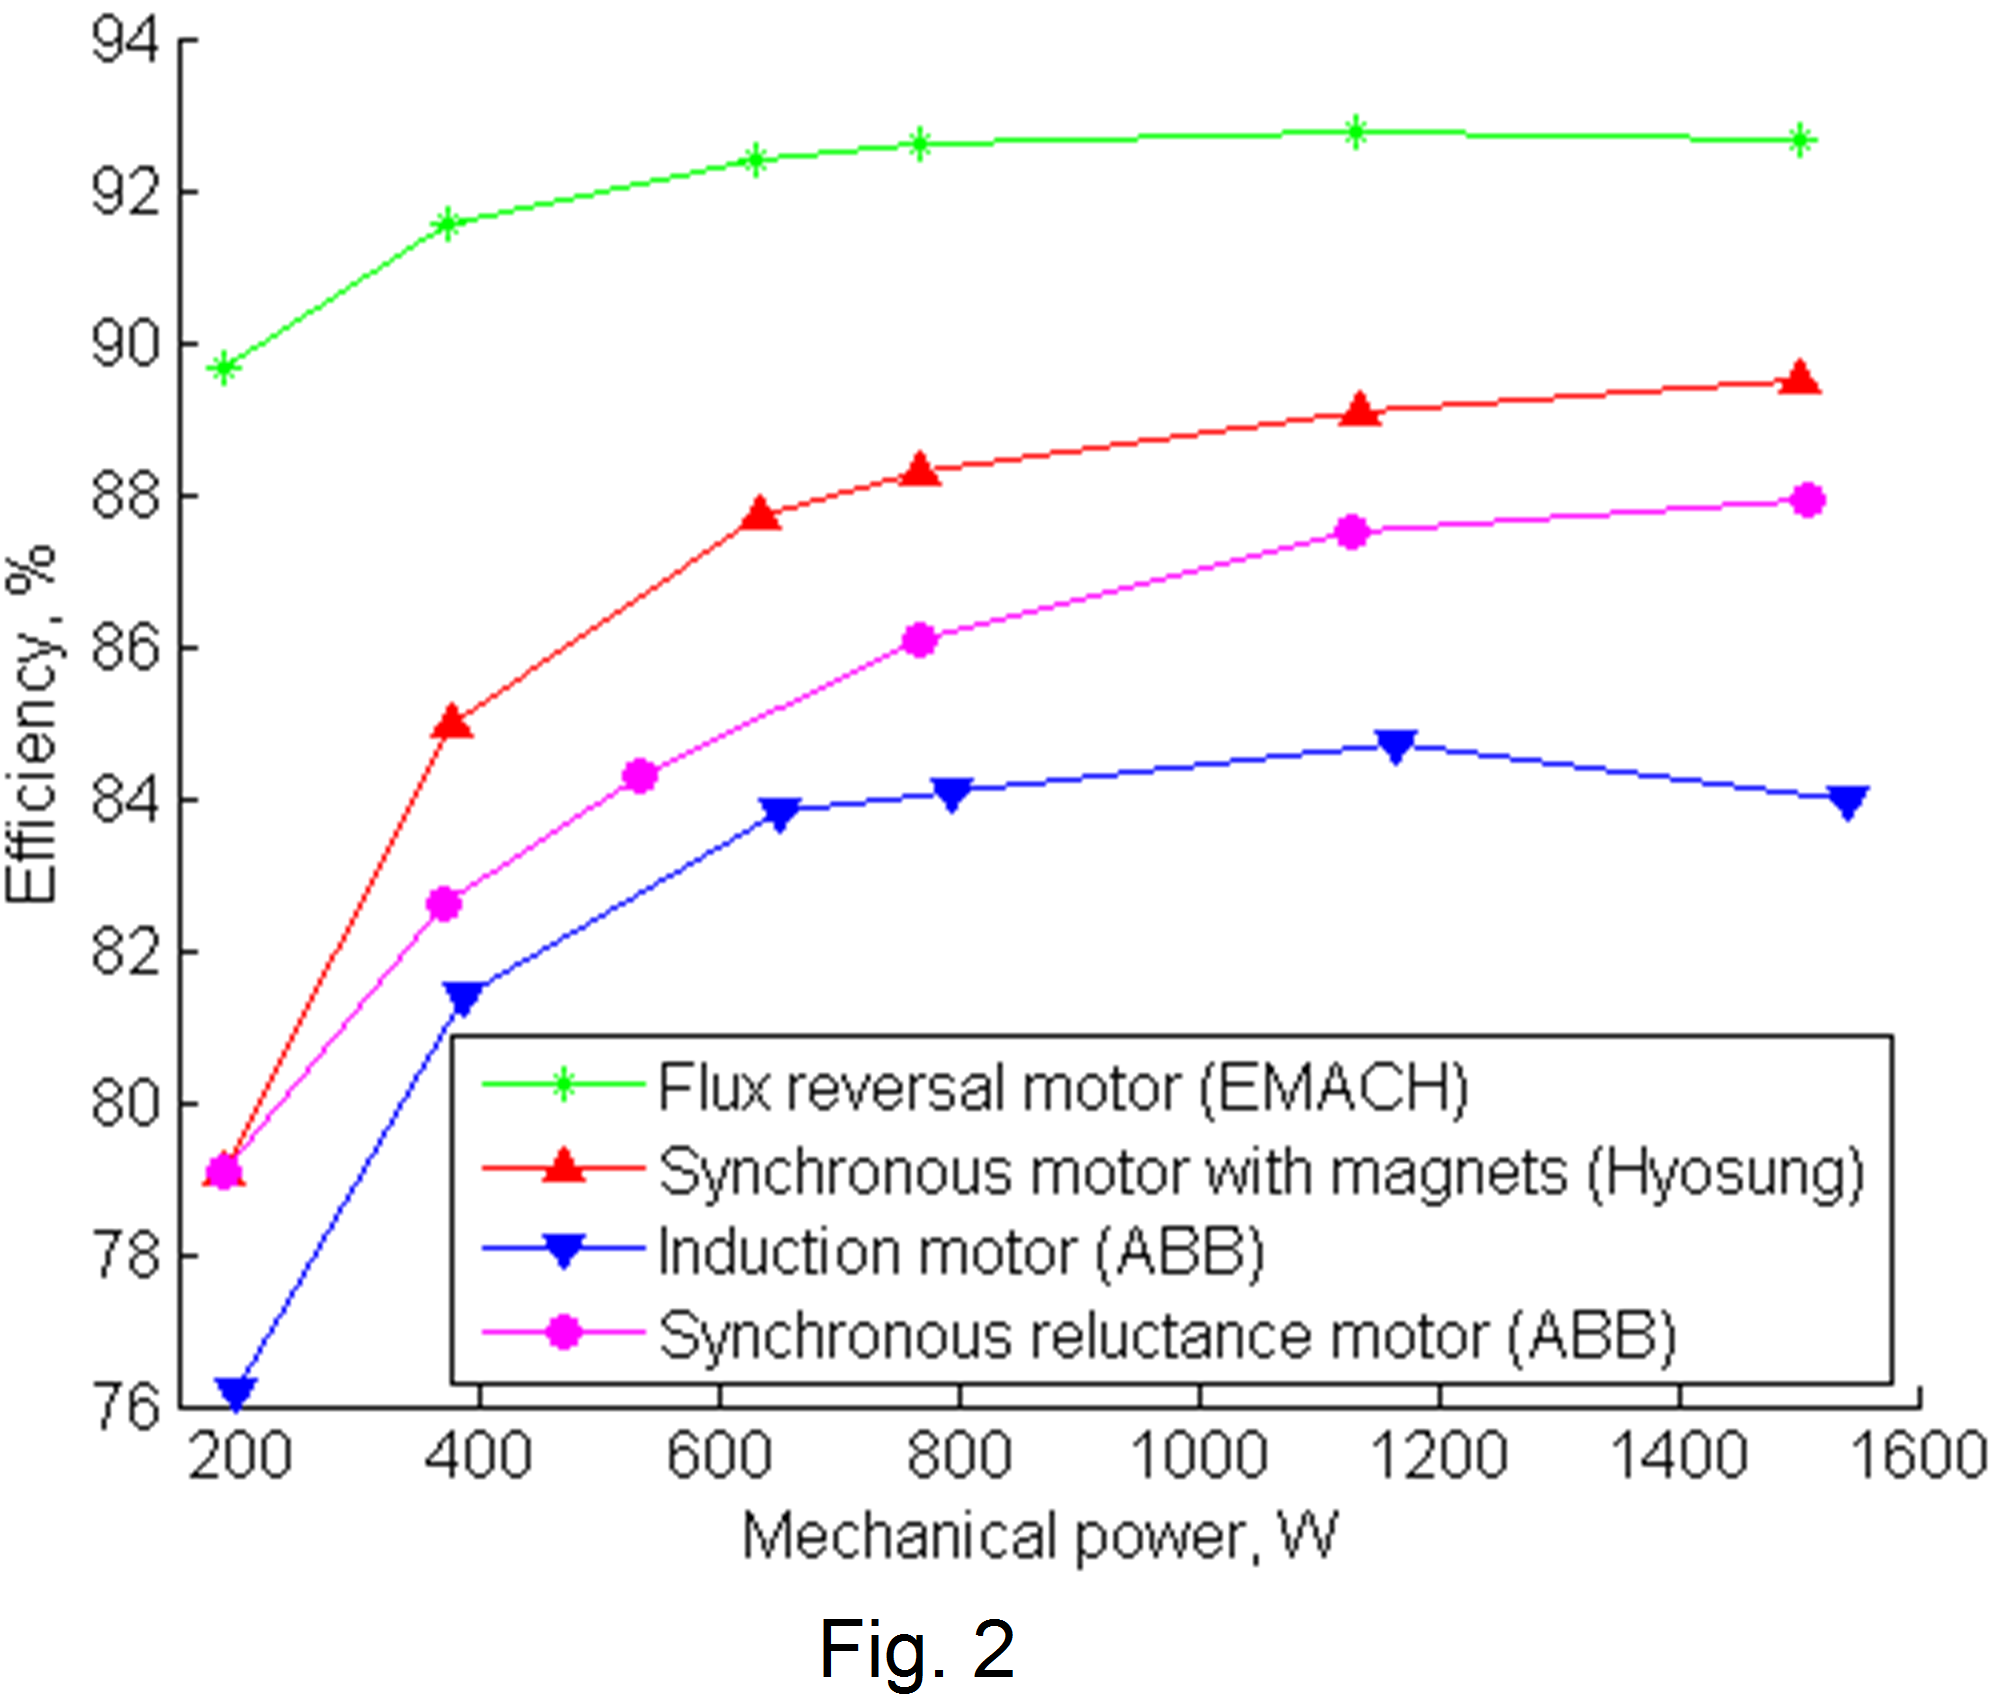 synchronous reluctance motor thesis A reluctance motor is a type of electric motor that induces non-permanent magnetic poles on the ferromagnetic rotor the rotor does not have any windings.